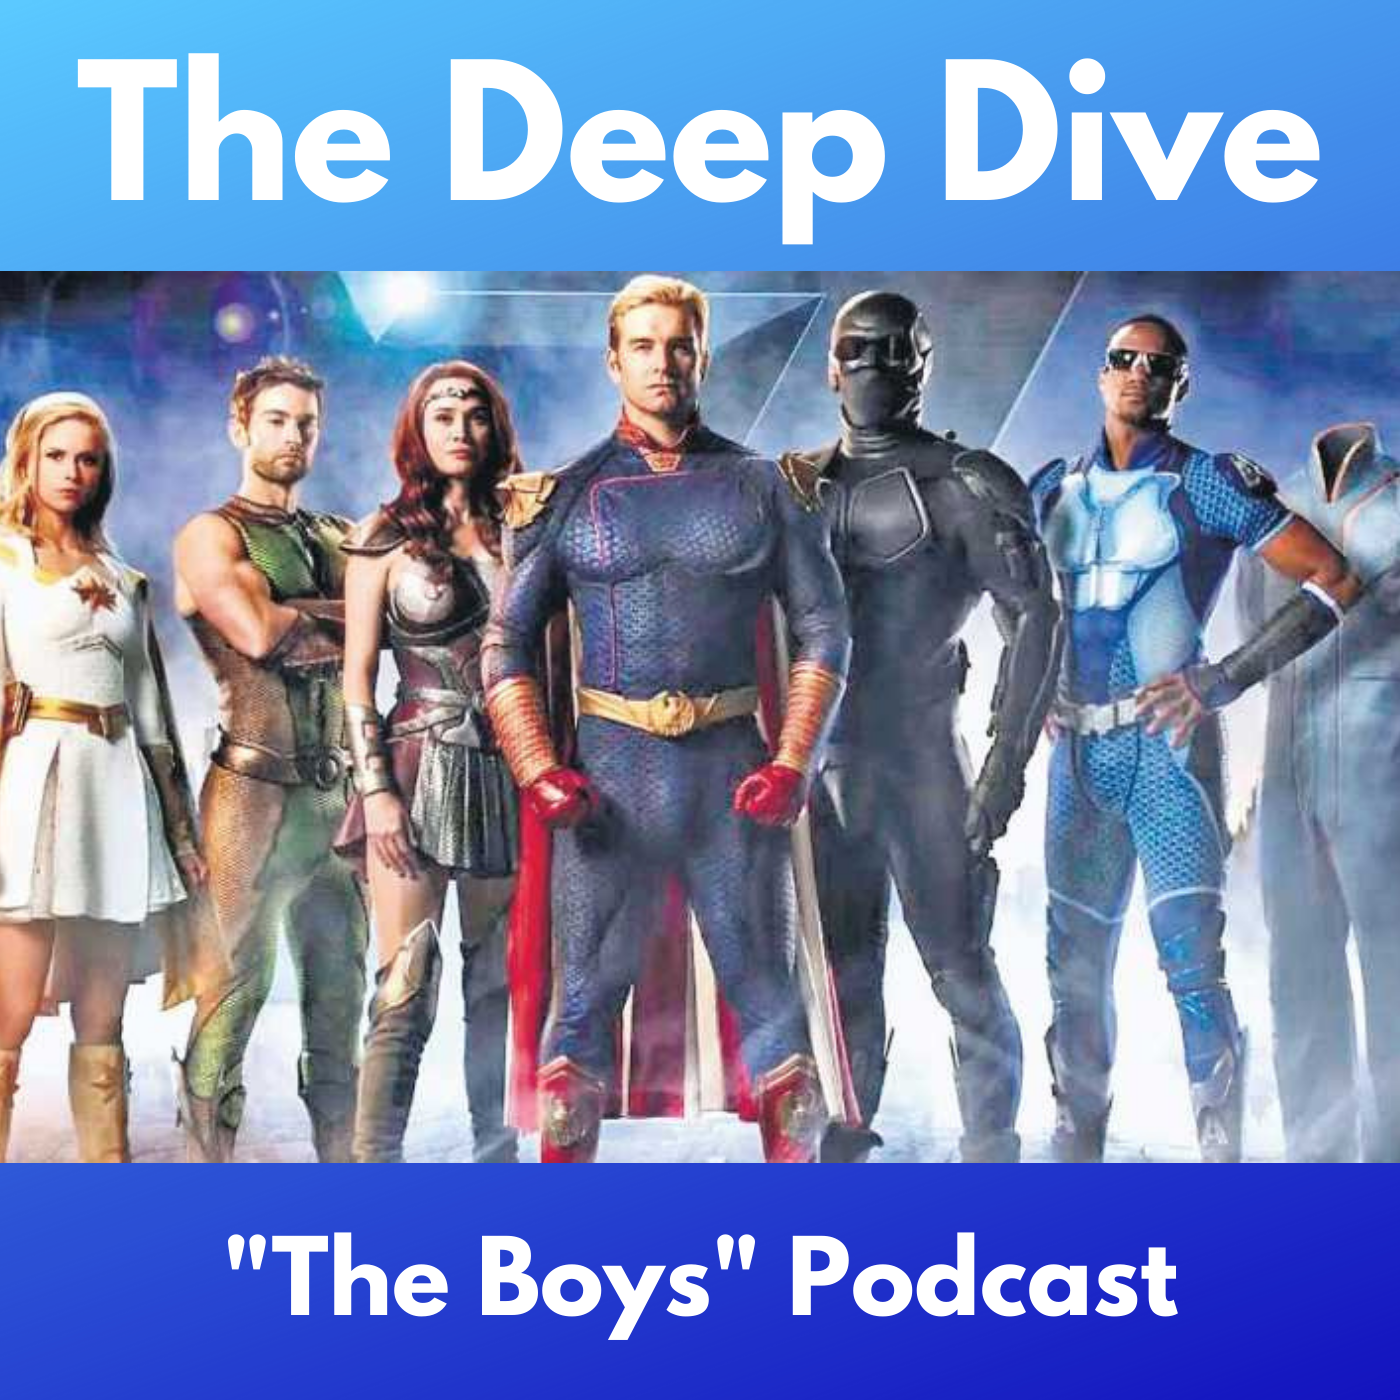 """The Deep Dive - """"The Boys"""" Podcast"""